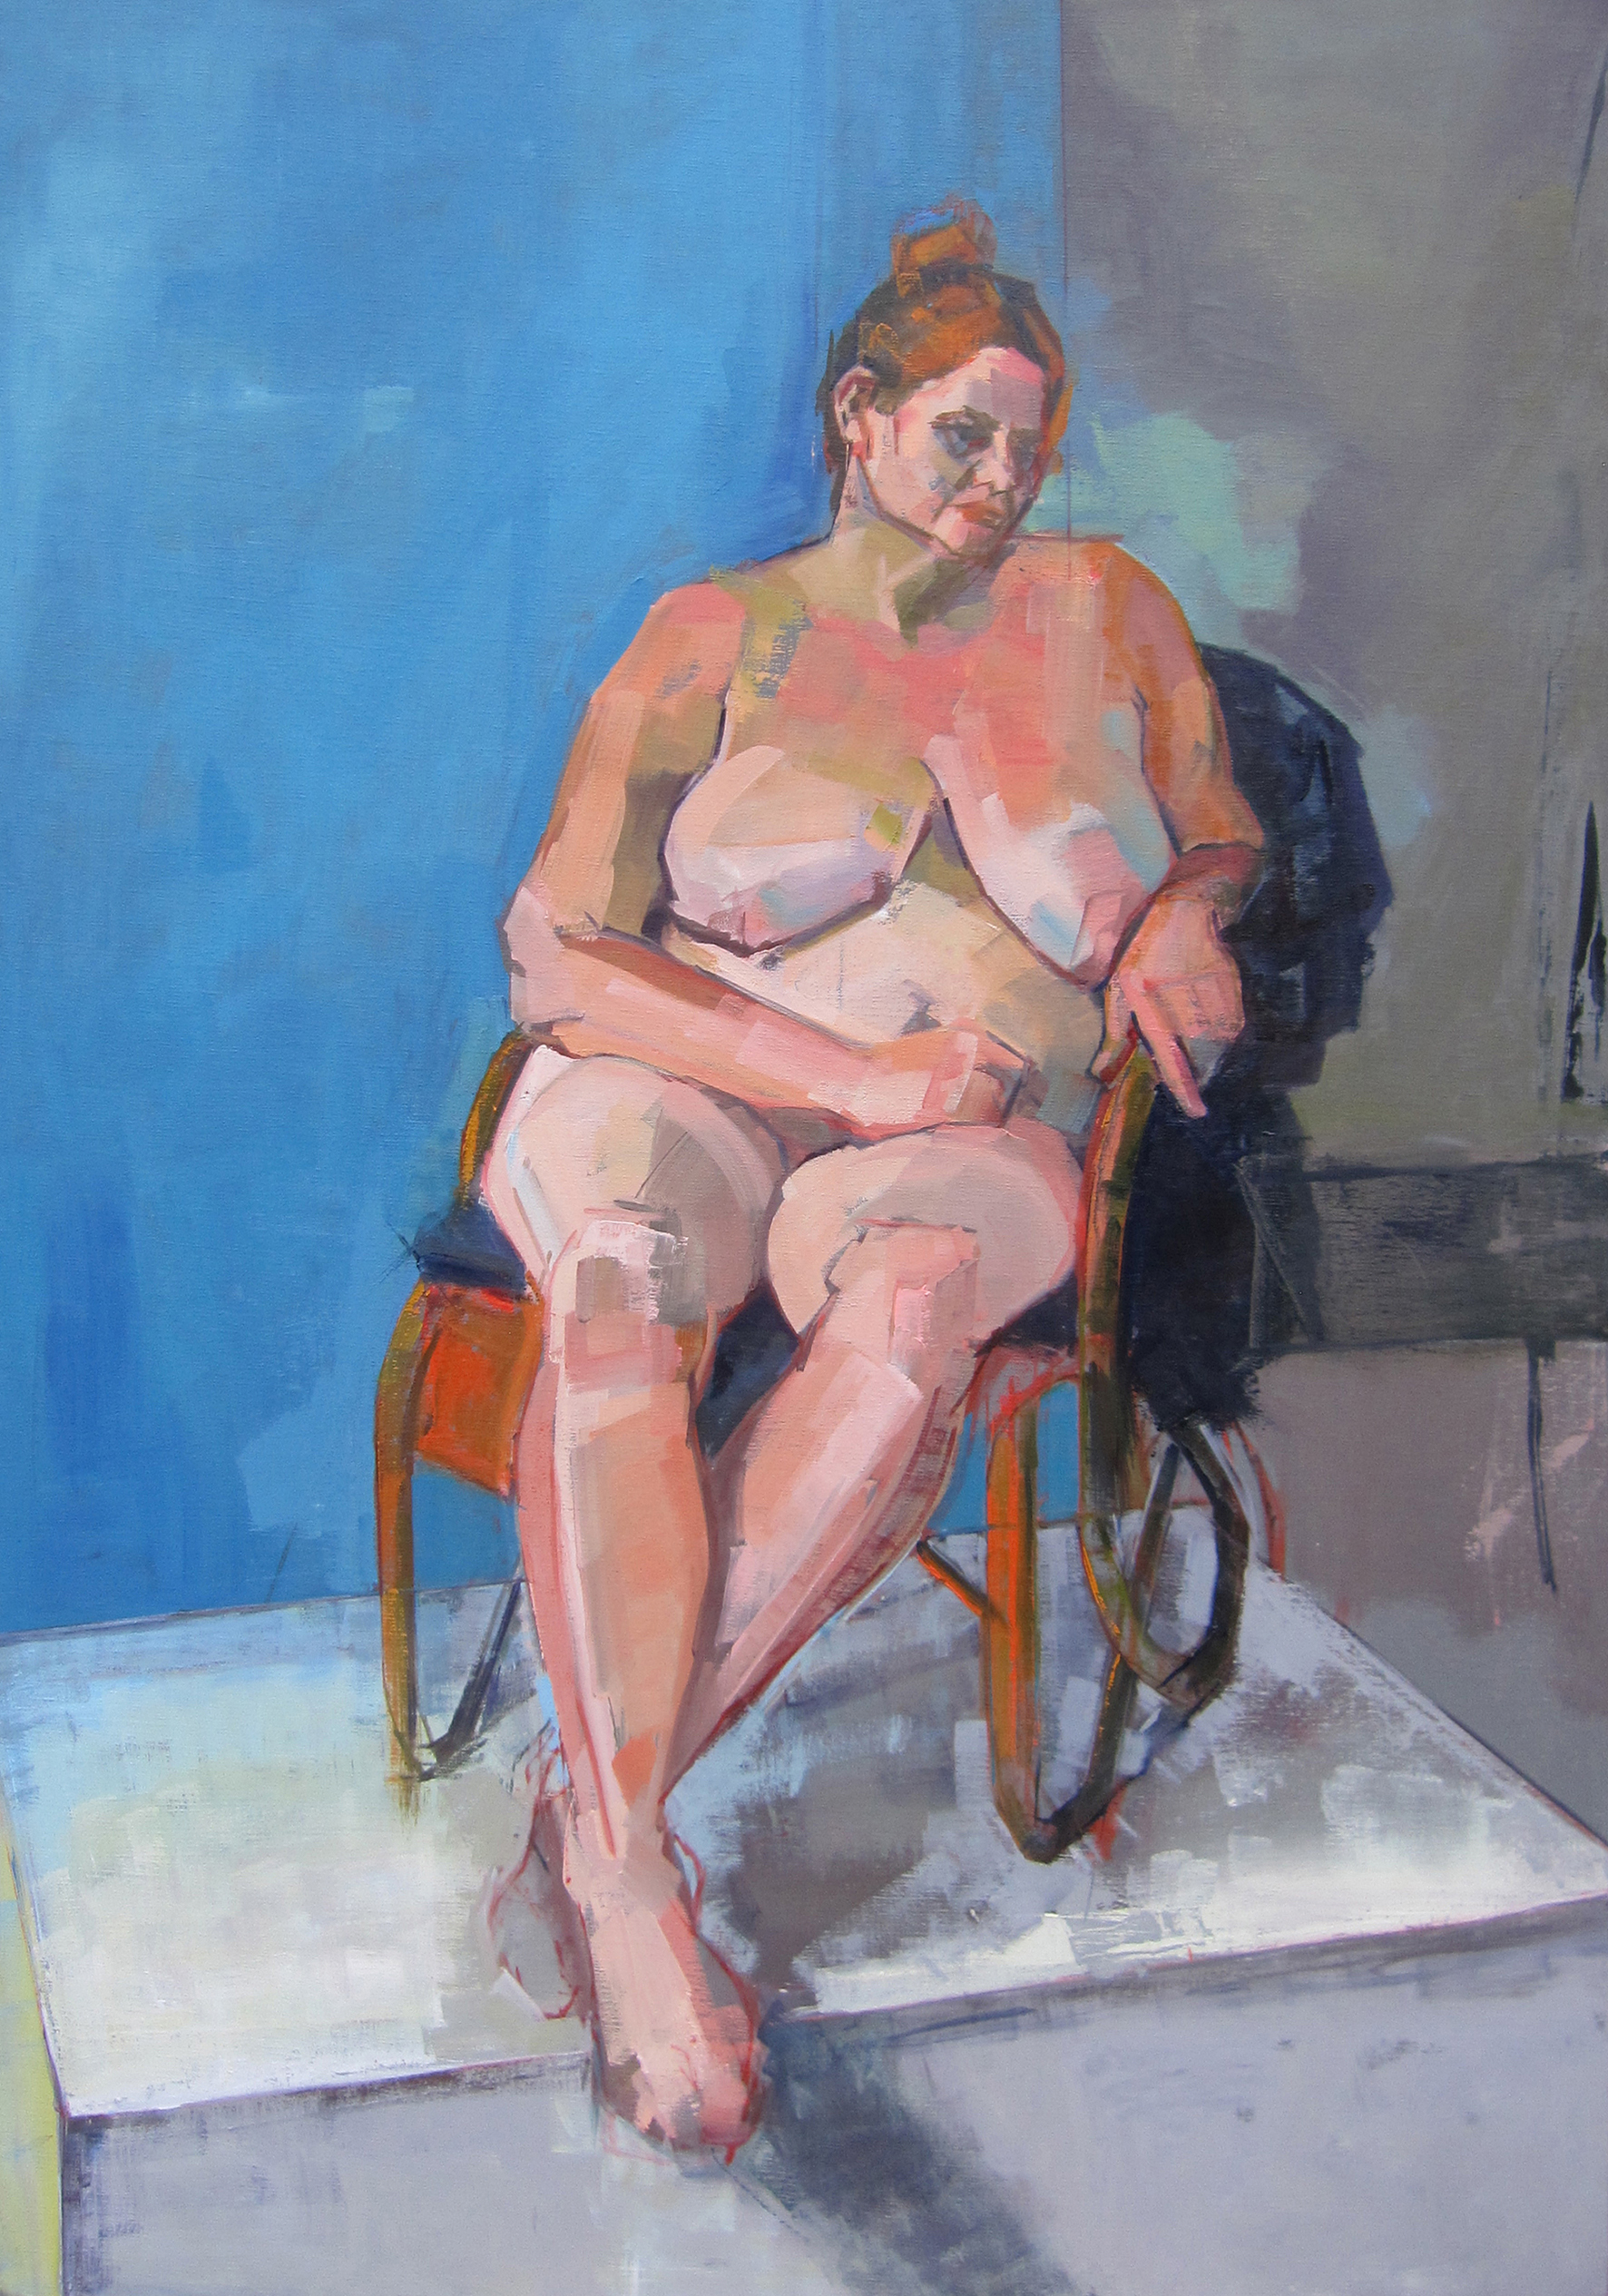 Eve Pettitt, Seated Nude, Oil on canvas, 100 x 70 x 4 cm,  http://evepettitt.co.uk